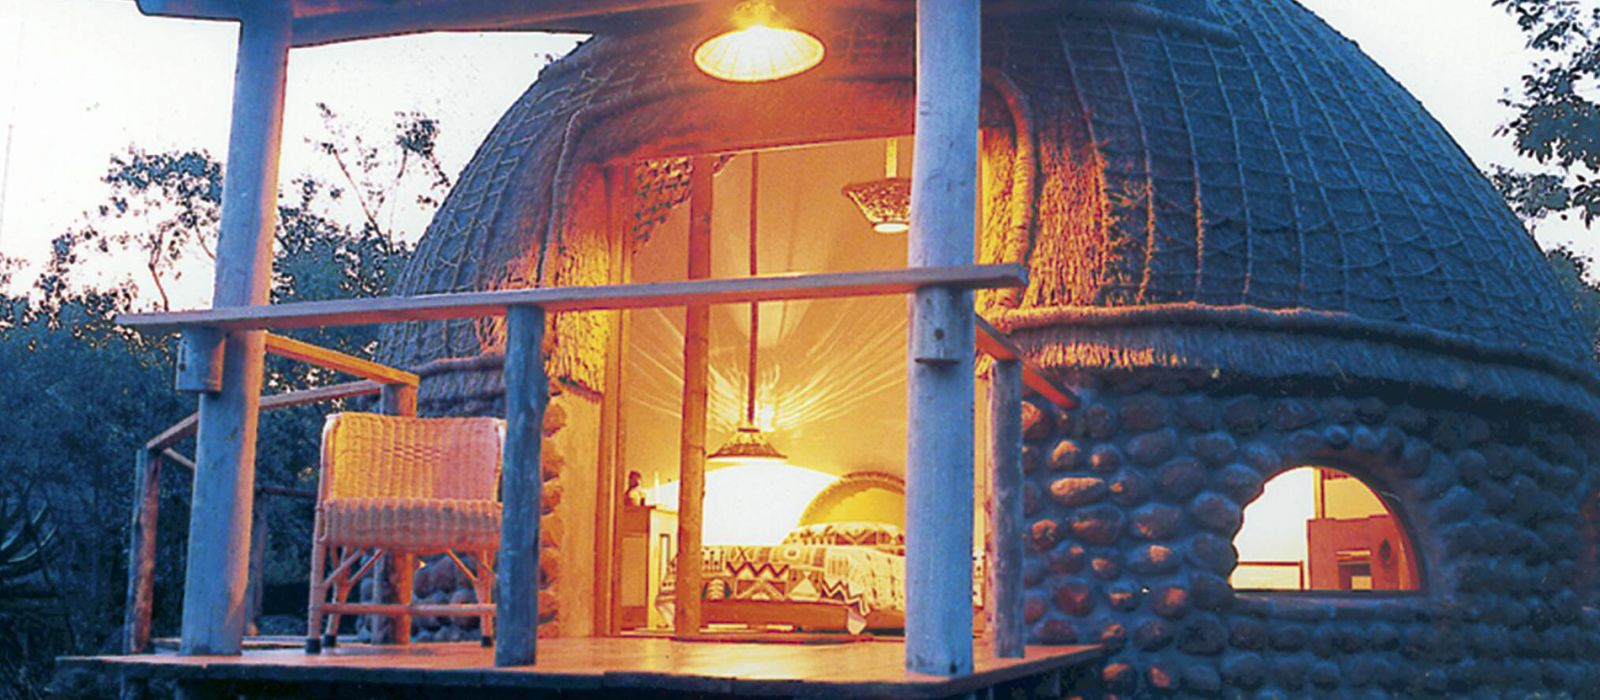 Hotel Isibindi Zulu Lodge South Africa